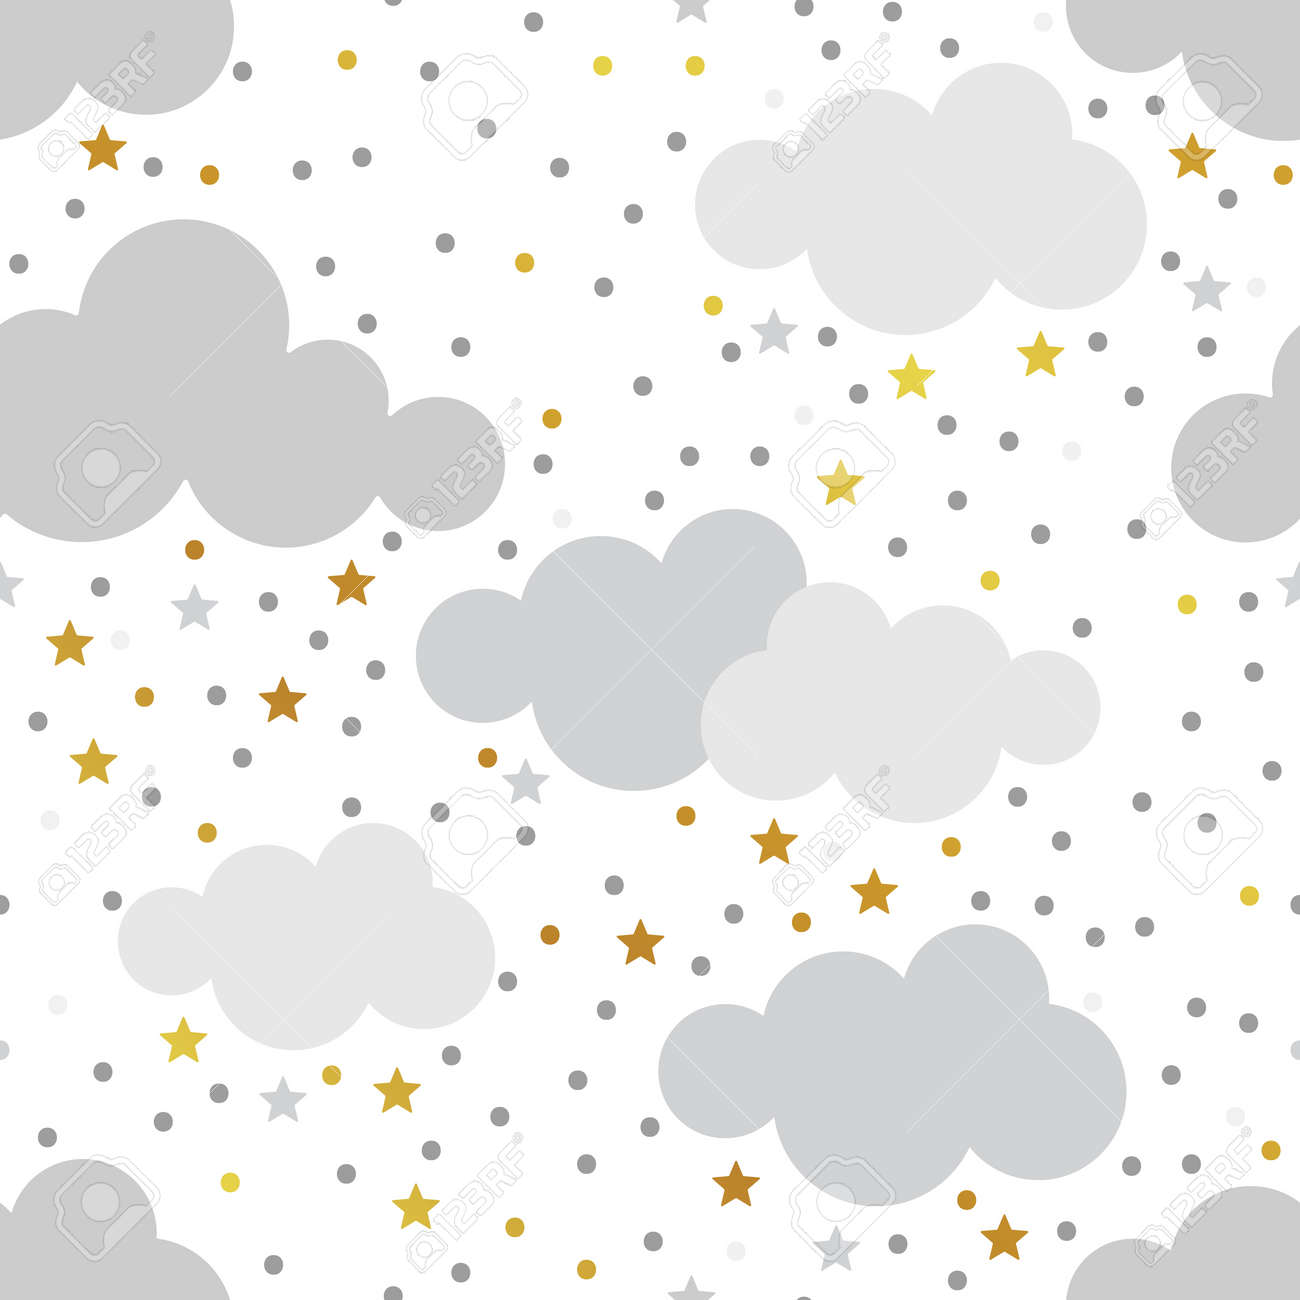 Scandinavian Seamless Pattern Set Gold Monochrome Patterns Kids Background Vector Baby